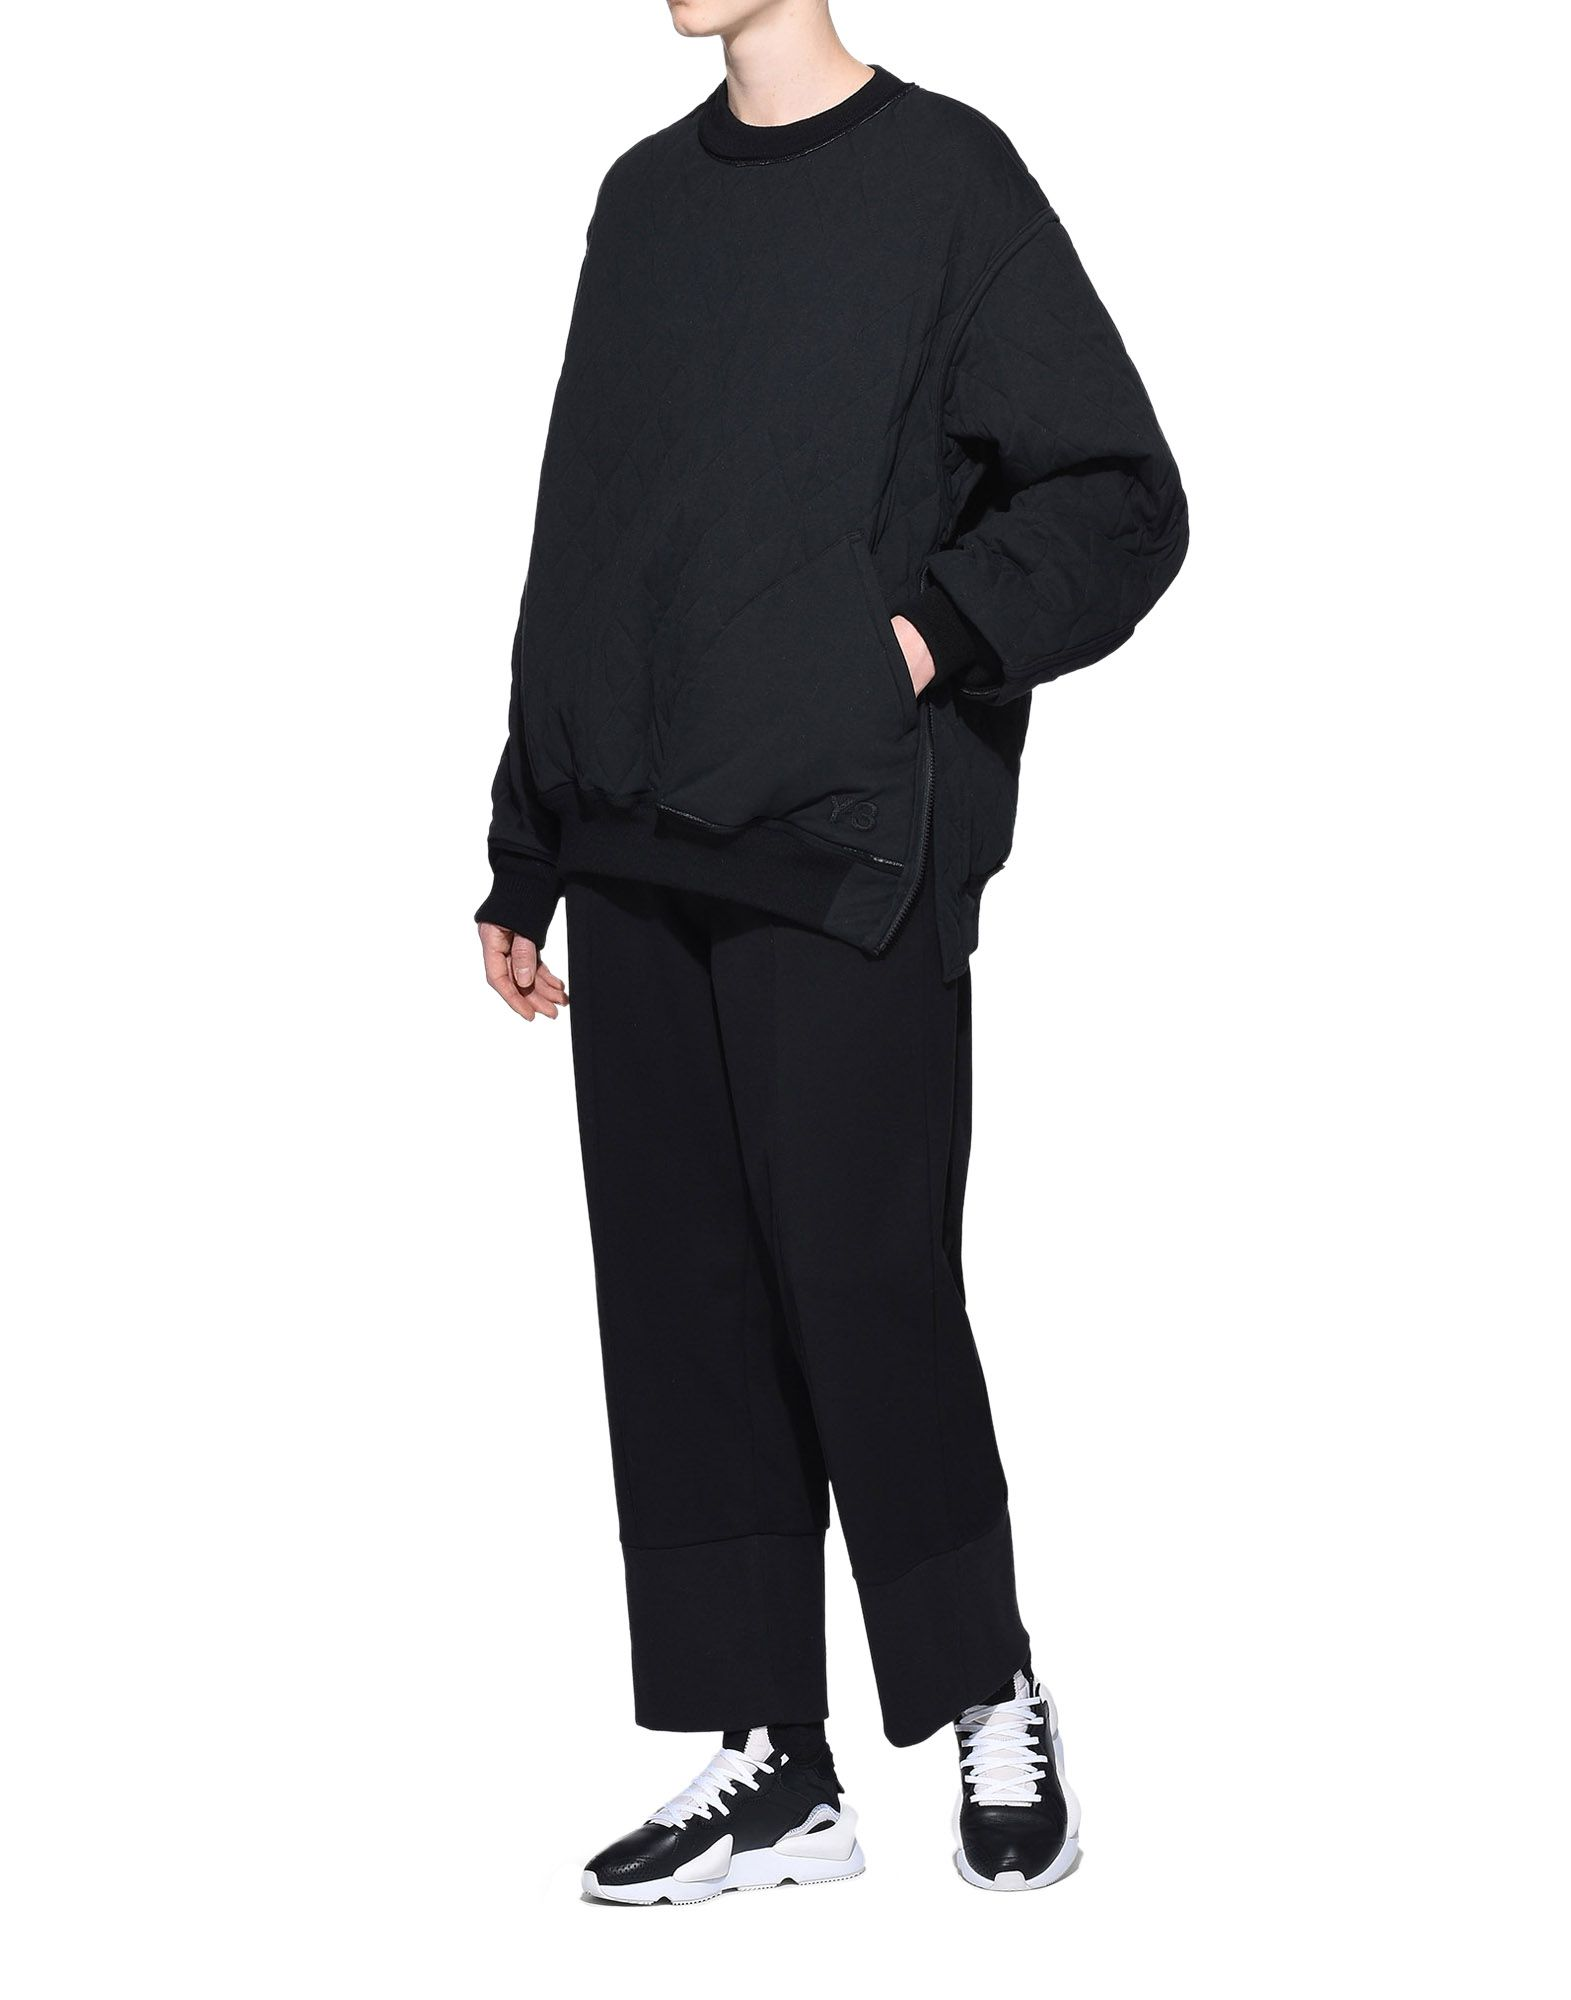 Y-3 Y-3 Quilted Sweater スウェット レディース a